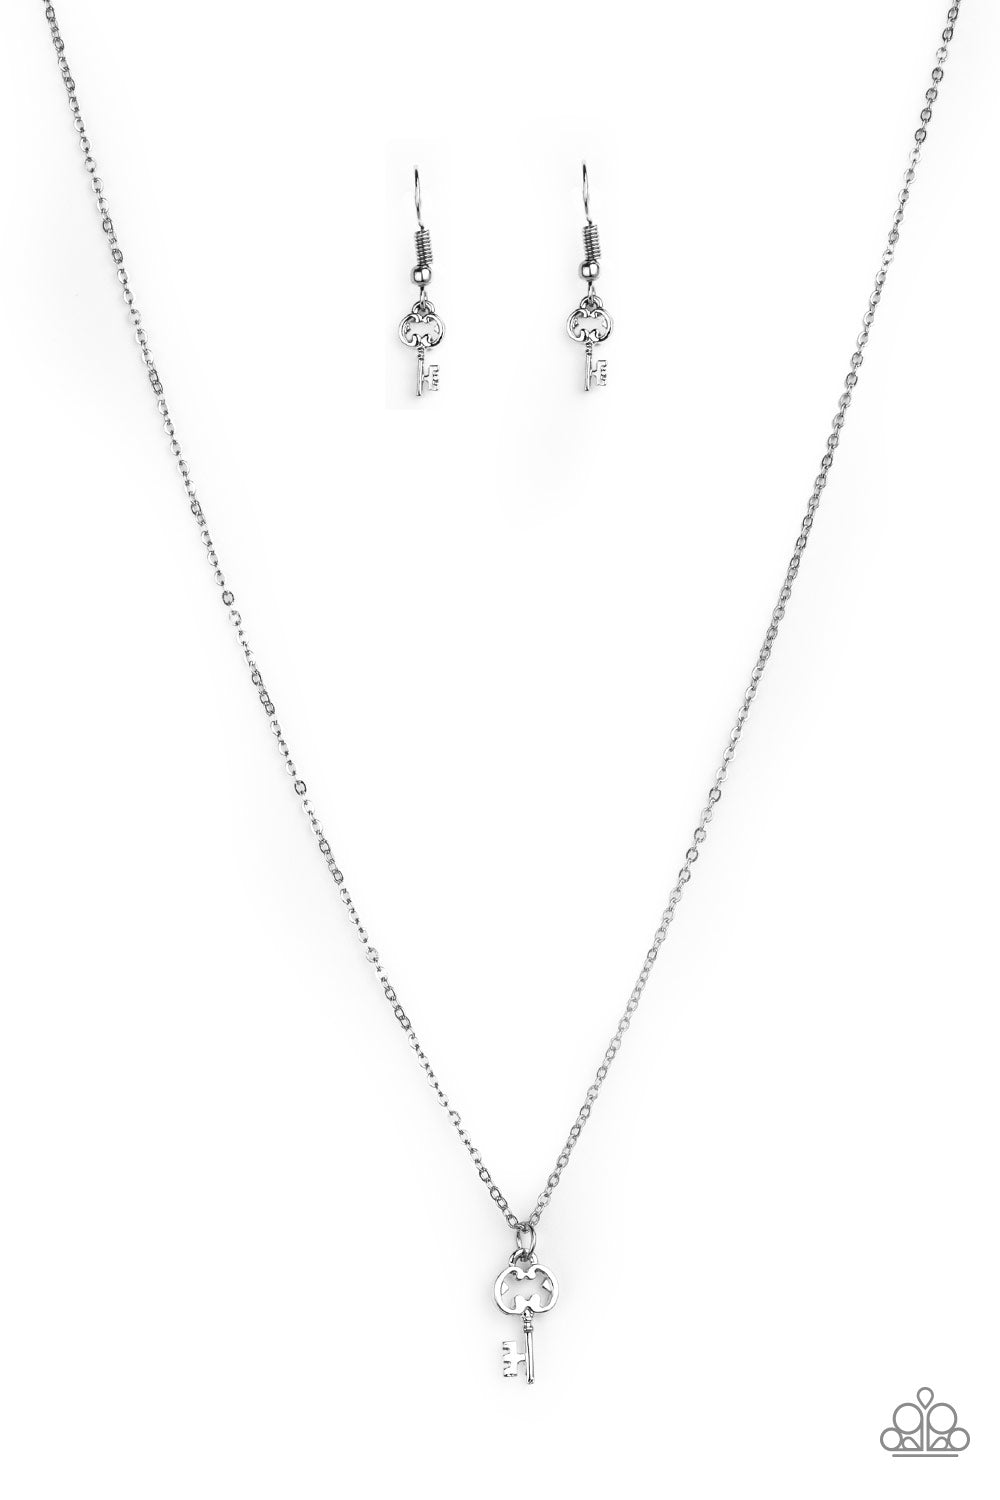 Paparazzi Accessories - Paparazzi Very Low Key - Silver Key Pendant Necklace and Earring Set - Necklaces